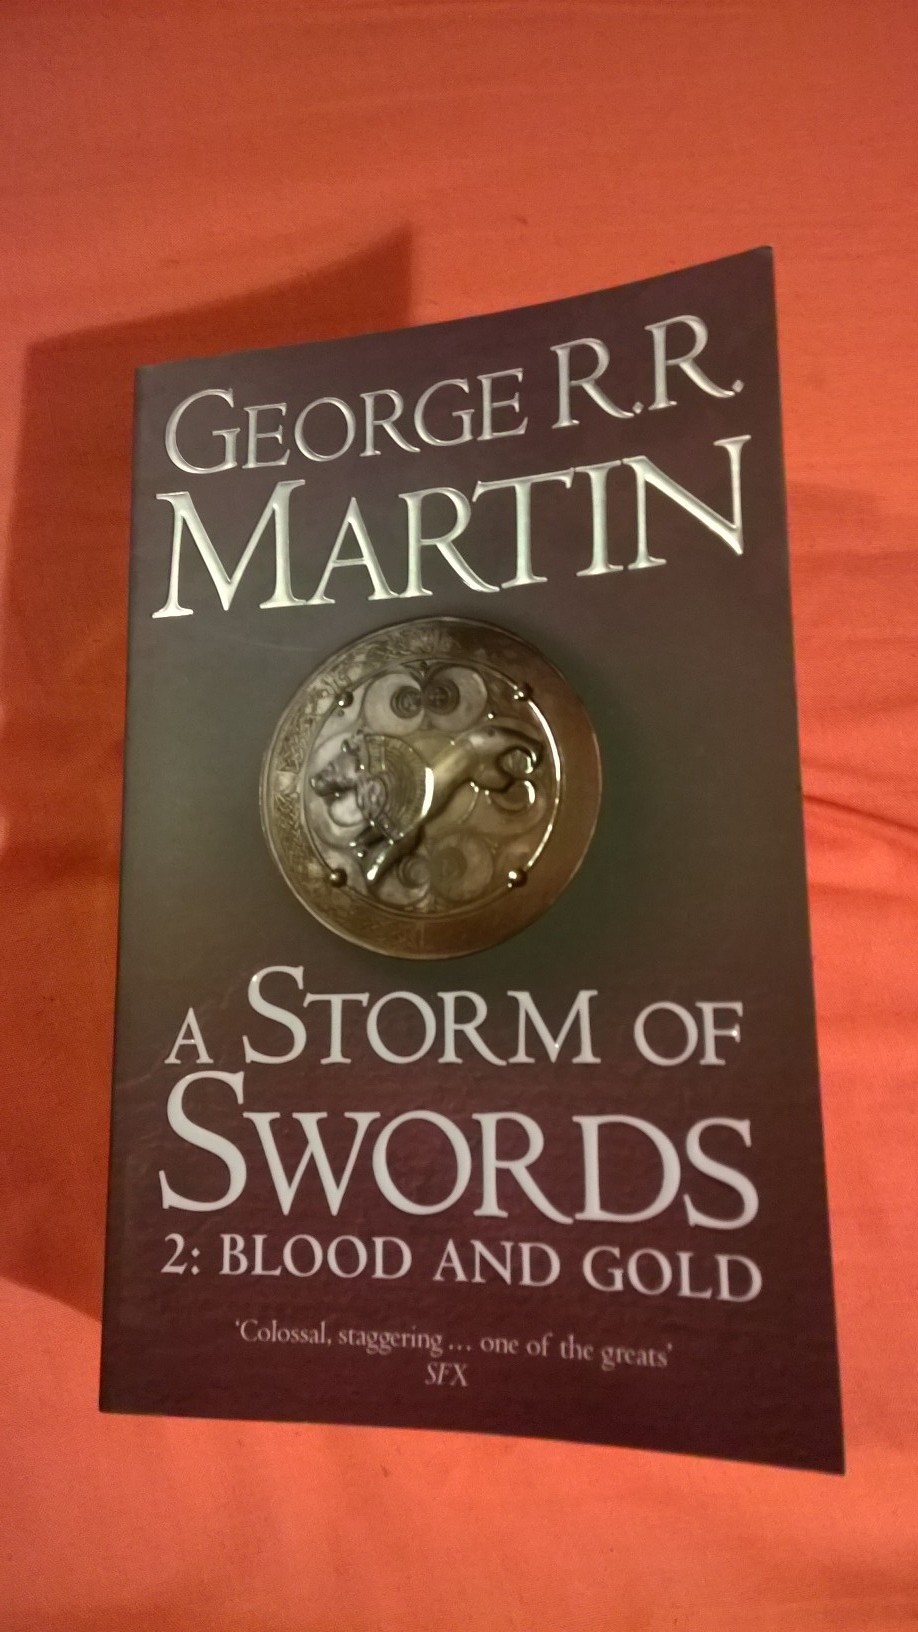 George R. R. Martin - A Storm of Swords: Blood and Gold